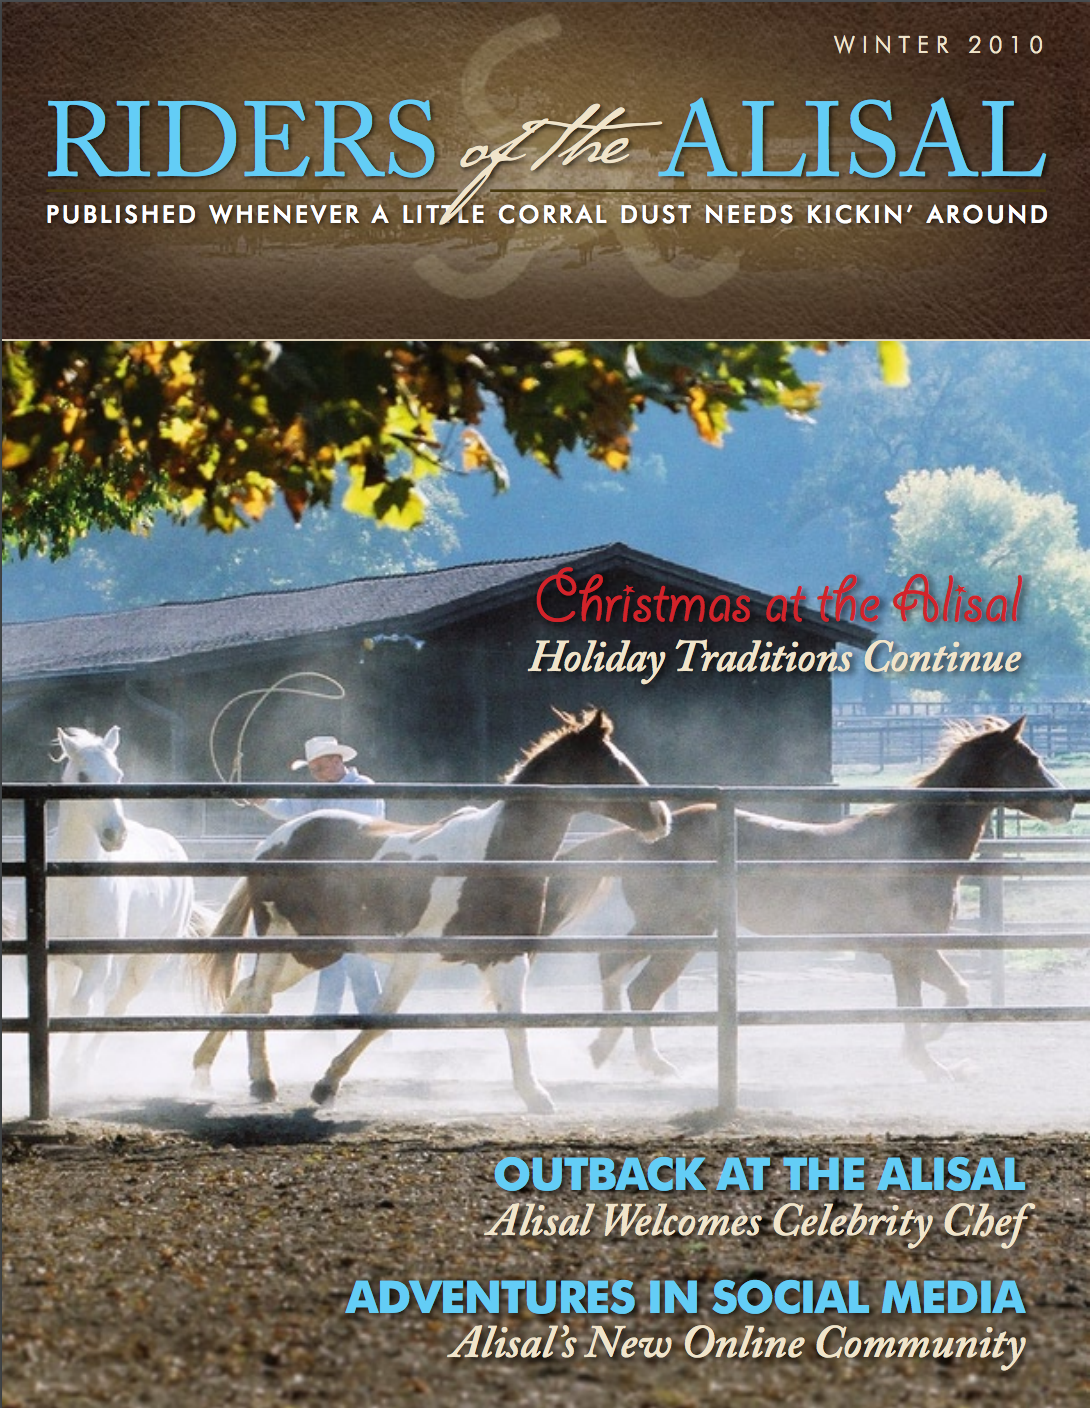 Riders of the Alisal - 2010 winter issue - Alisal Guest Ranch and Resort